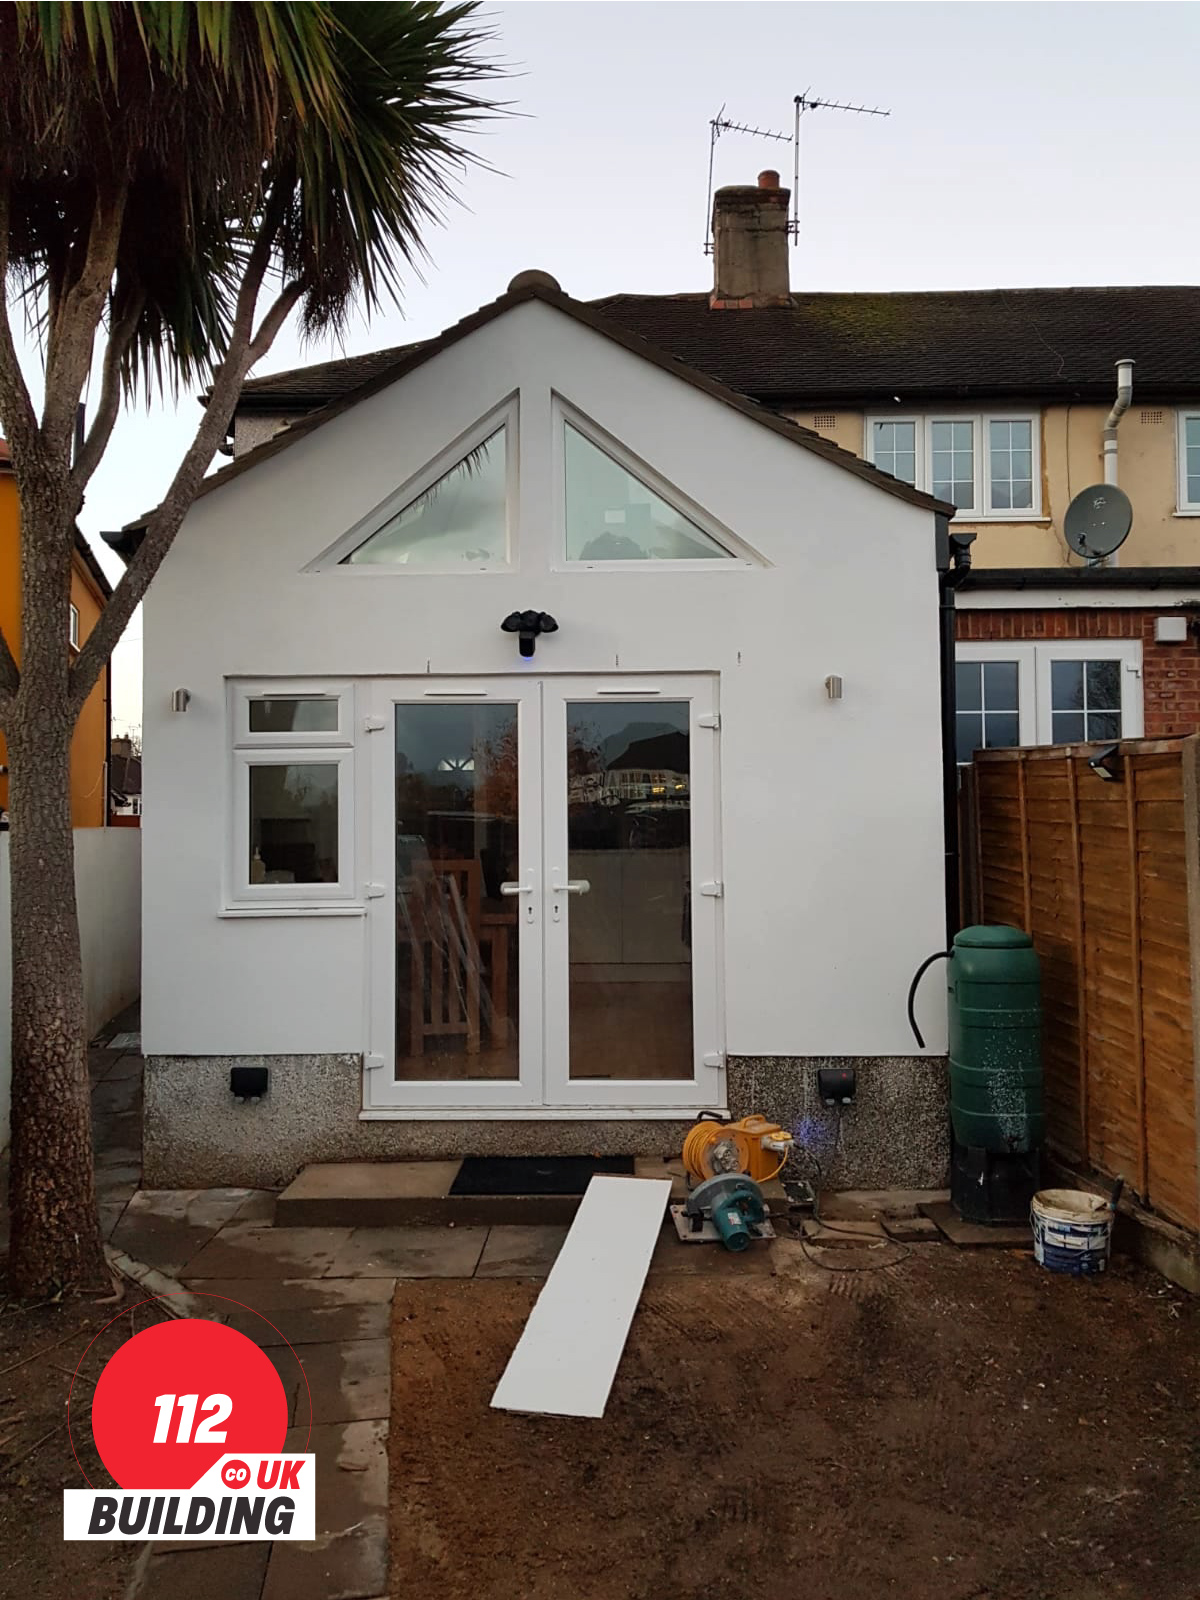 HOUSE EXTENSION in Turnpike Lane